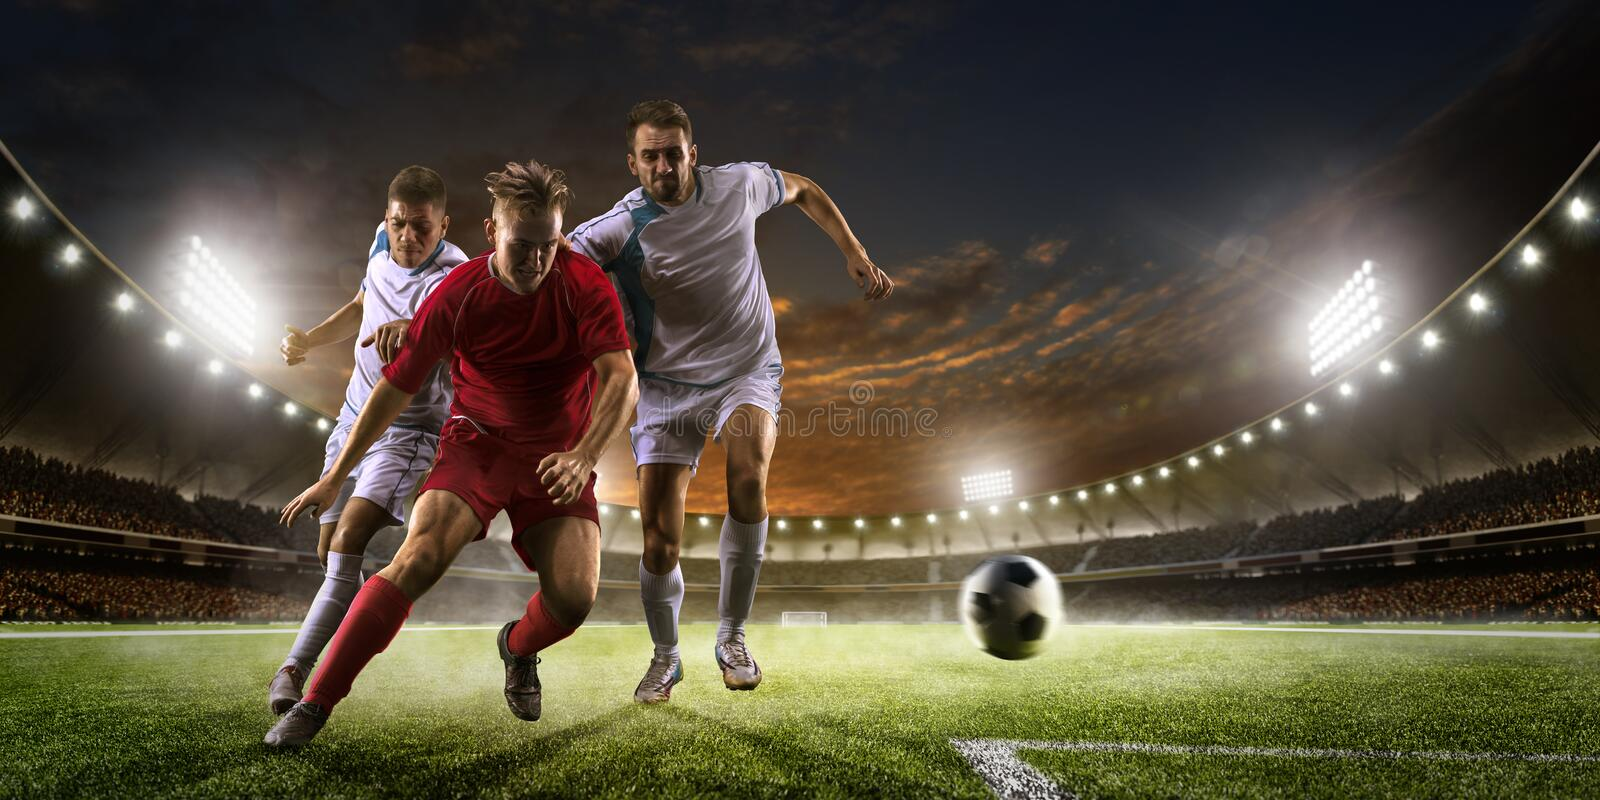 Soccer players in action on sunset stadium background panorama stock photos